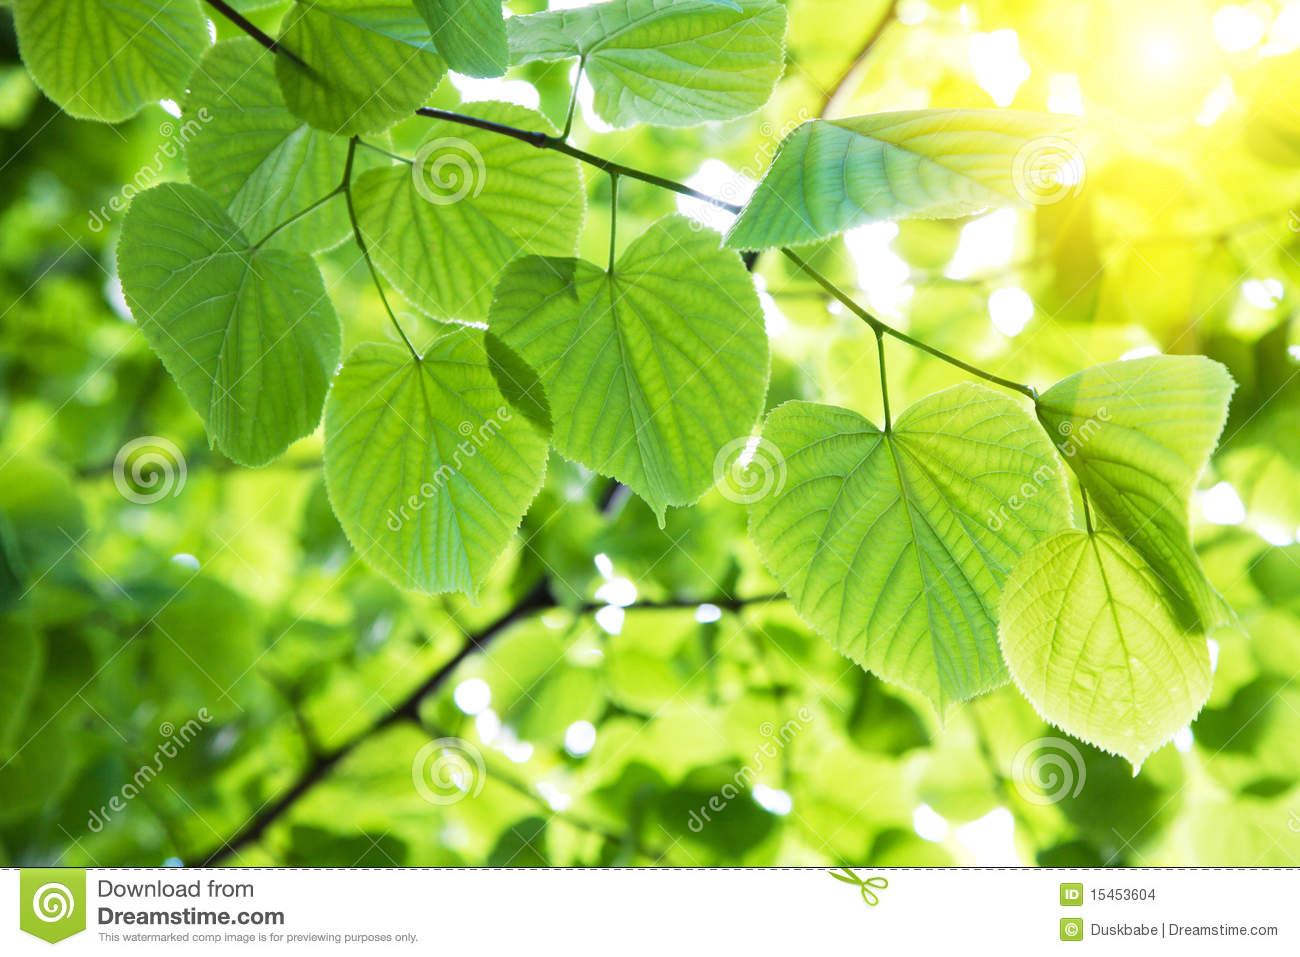 Leaves In Sunlight Stock Images - Image: 15453604